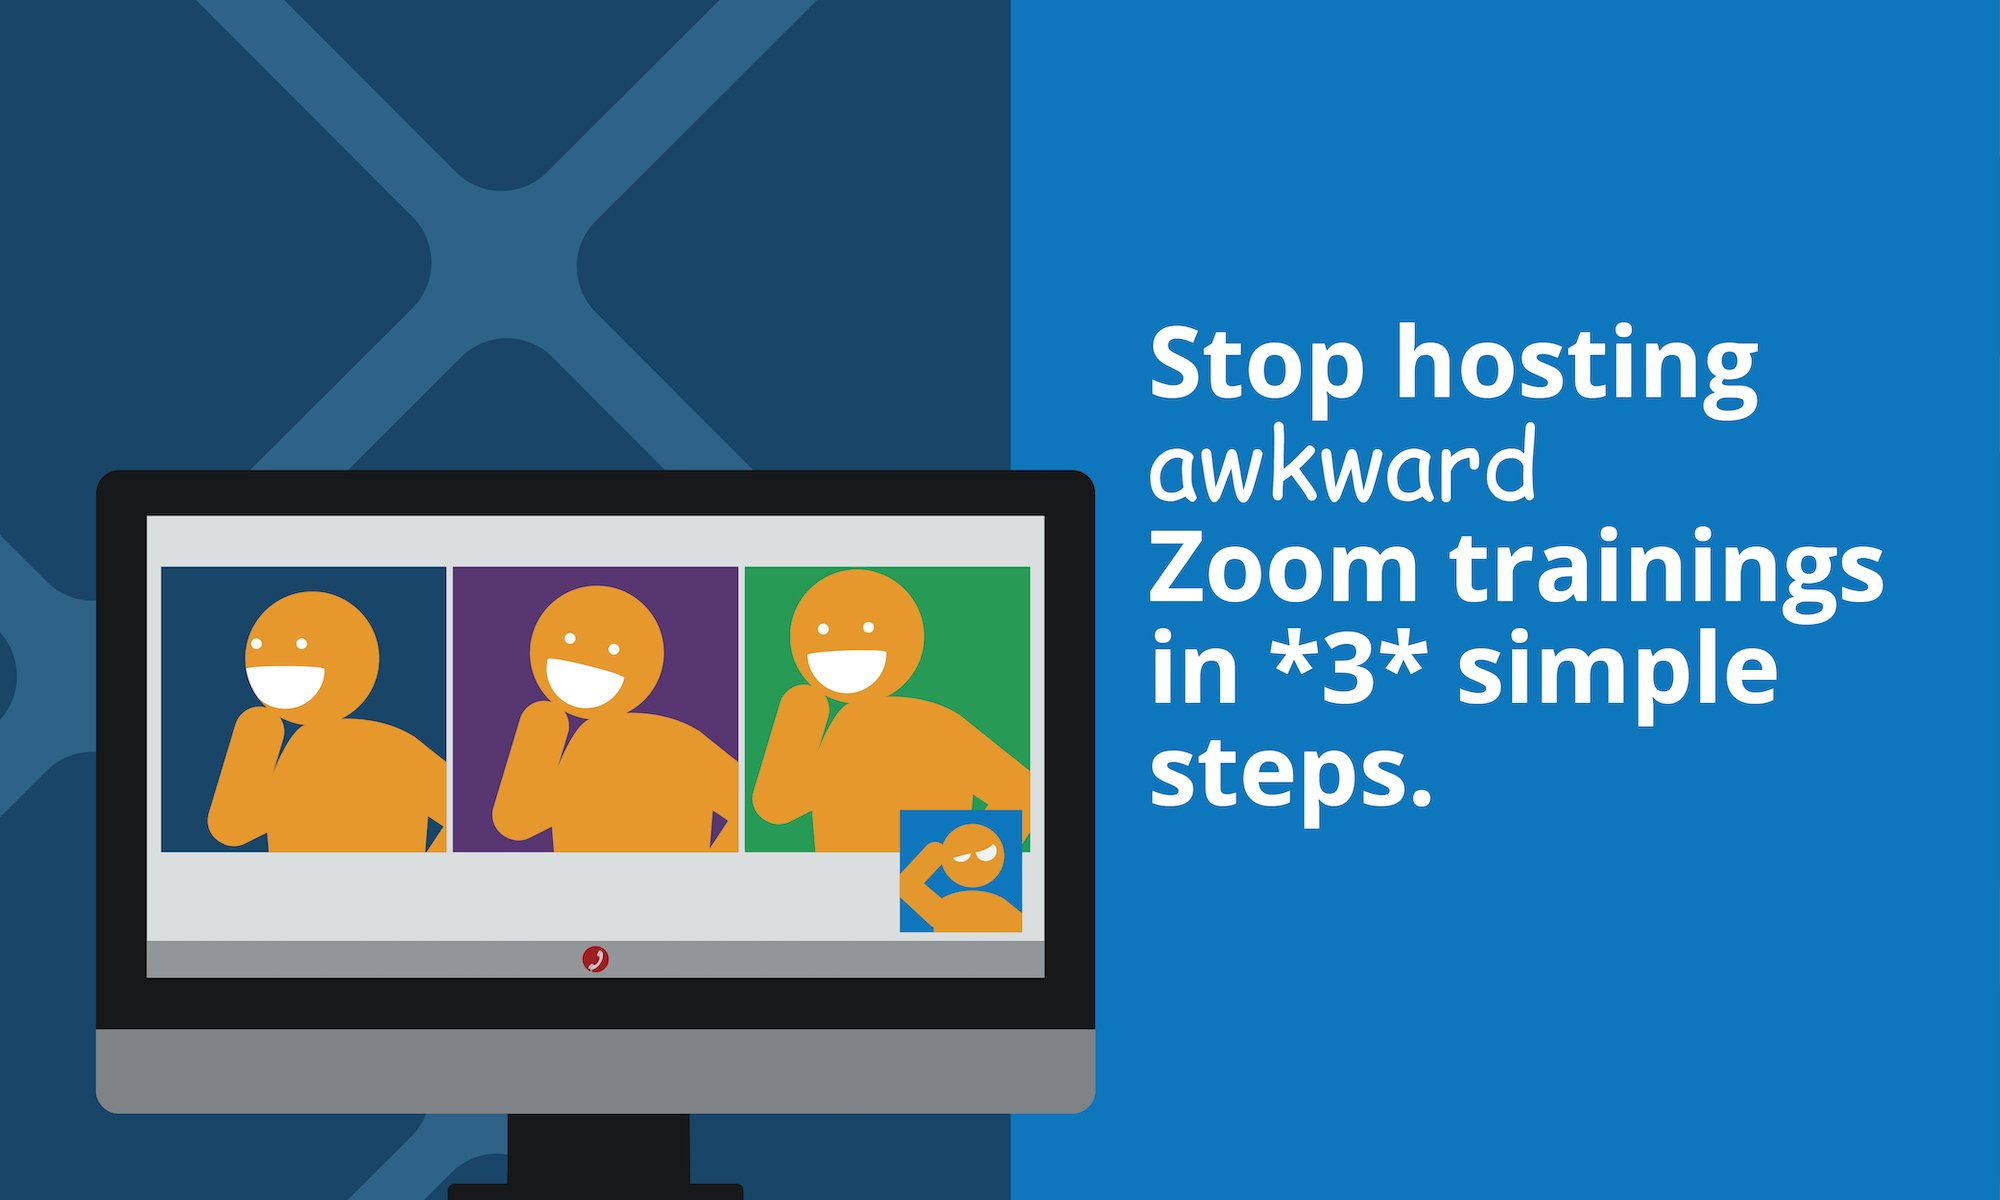 Stop hosting awkward Zoom trainings in 3 simple steps